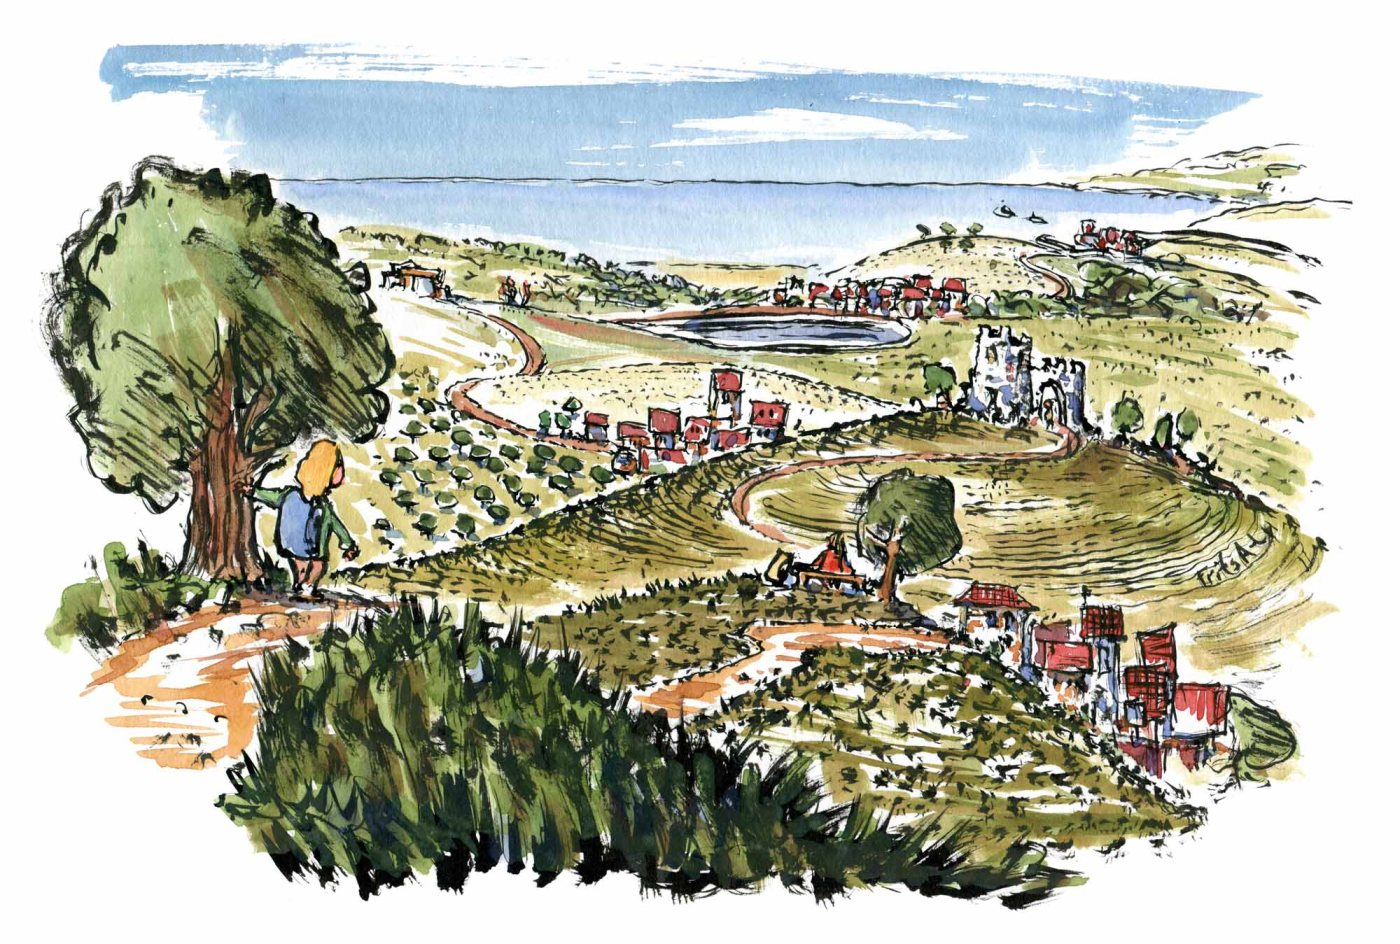 Drawing of a landscapes with towns and places connected with hiking trails. illustration by Frits Ahlefeldt